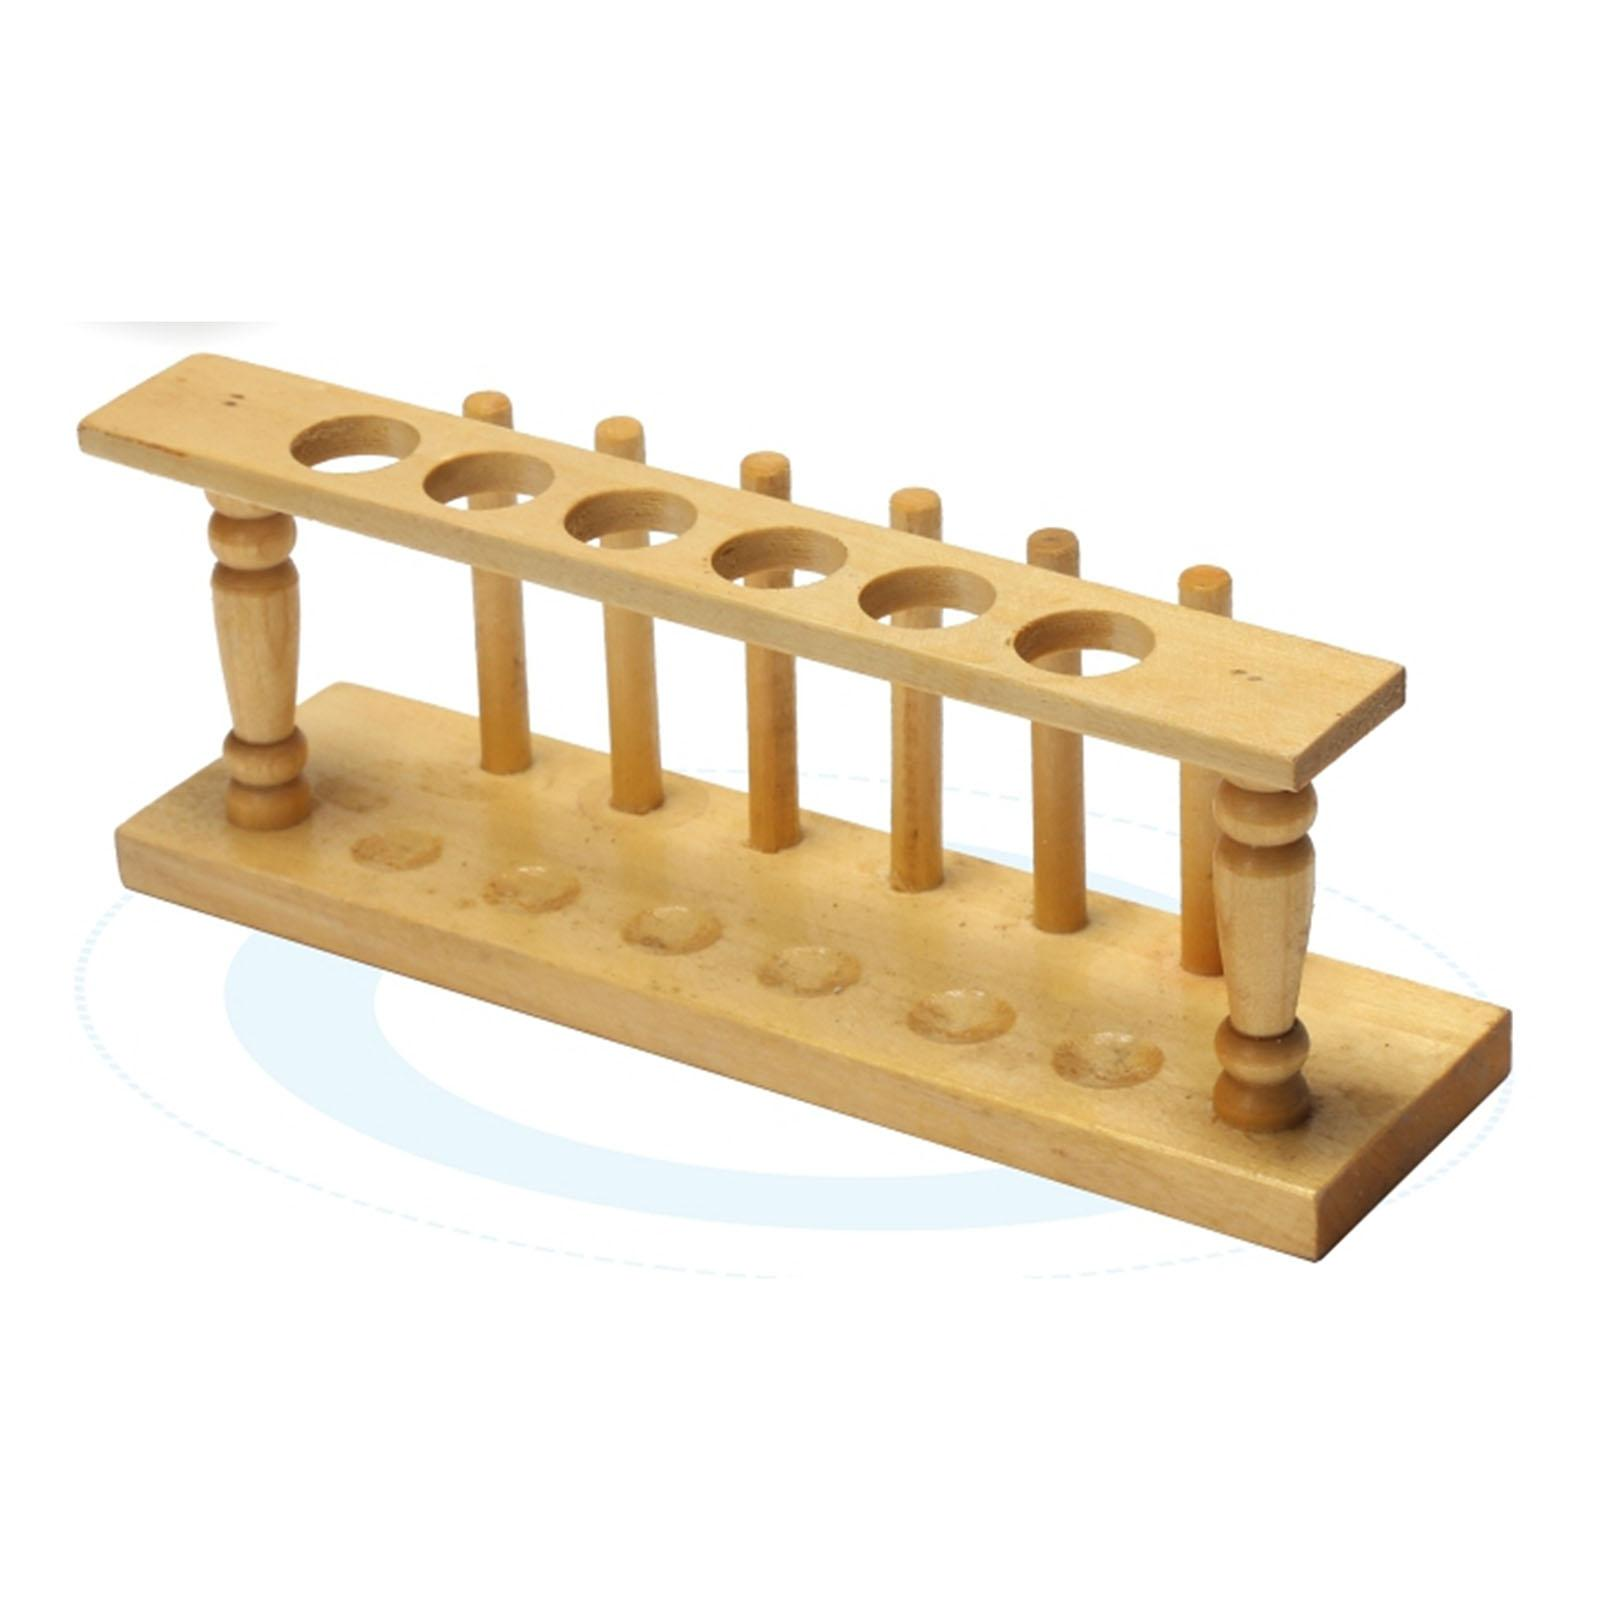 6 Holes 20mm Hole Diameter Lab Wooden Test Tube Storage Holder Bracket Rack With Stand Sticks